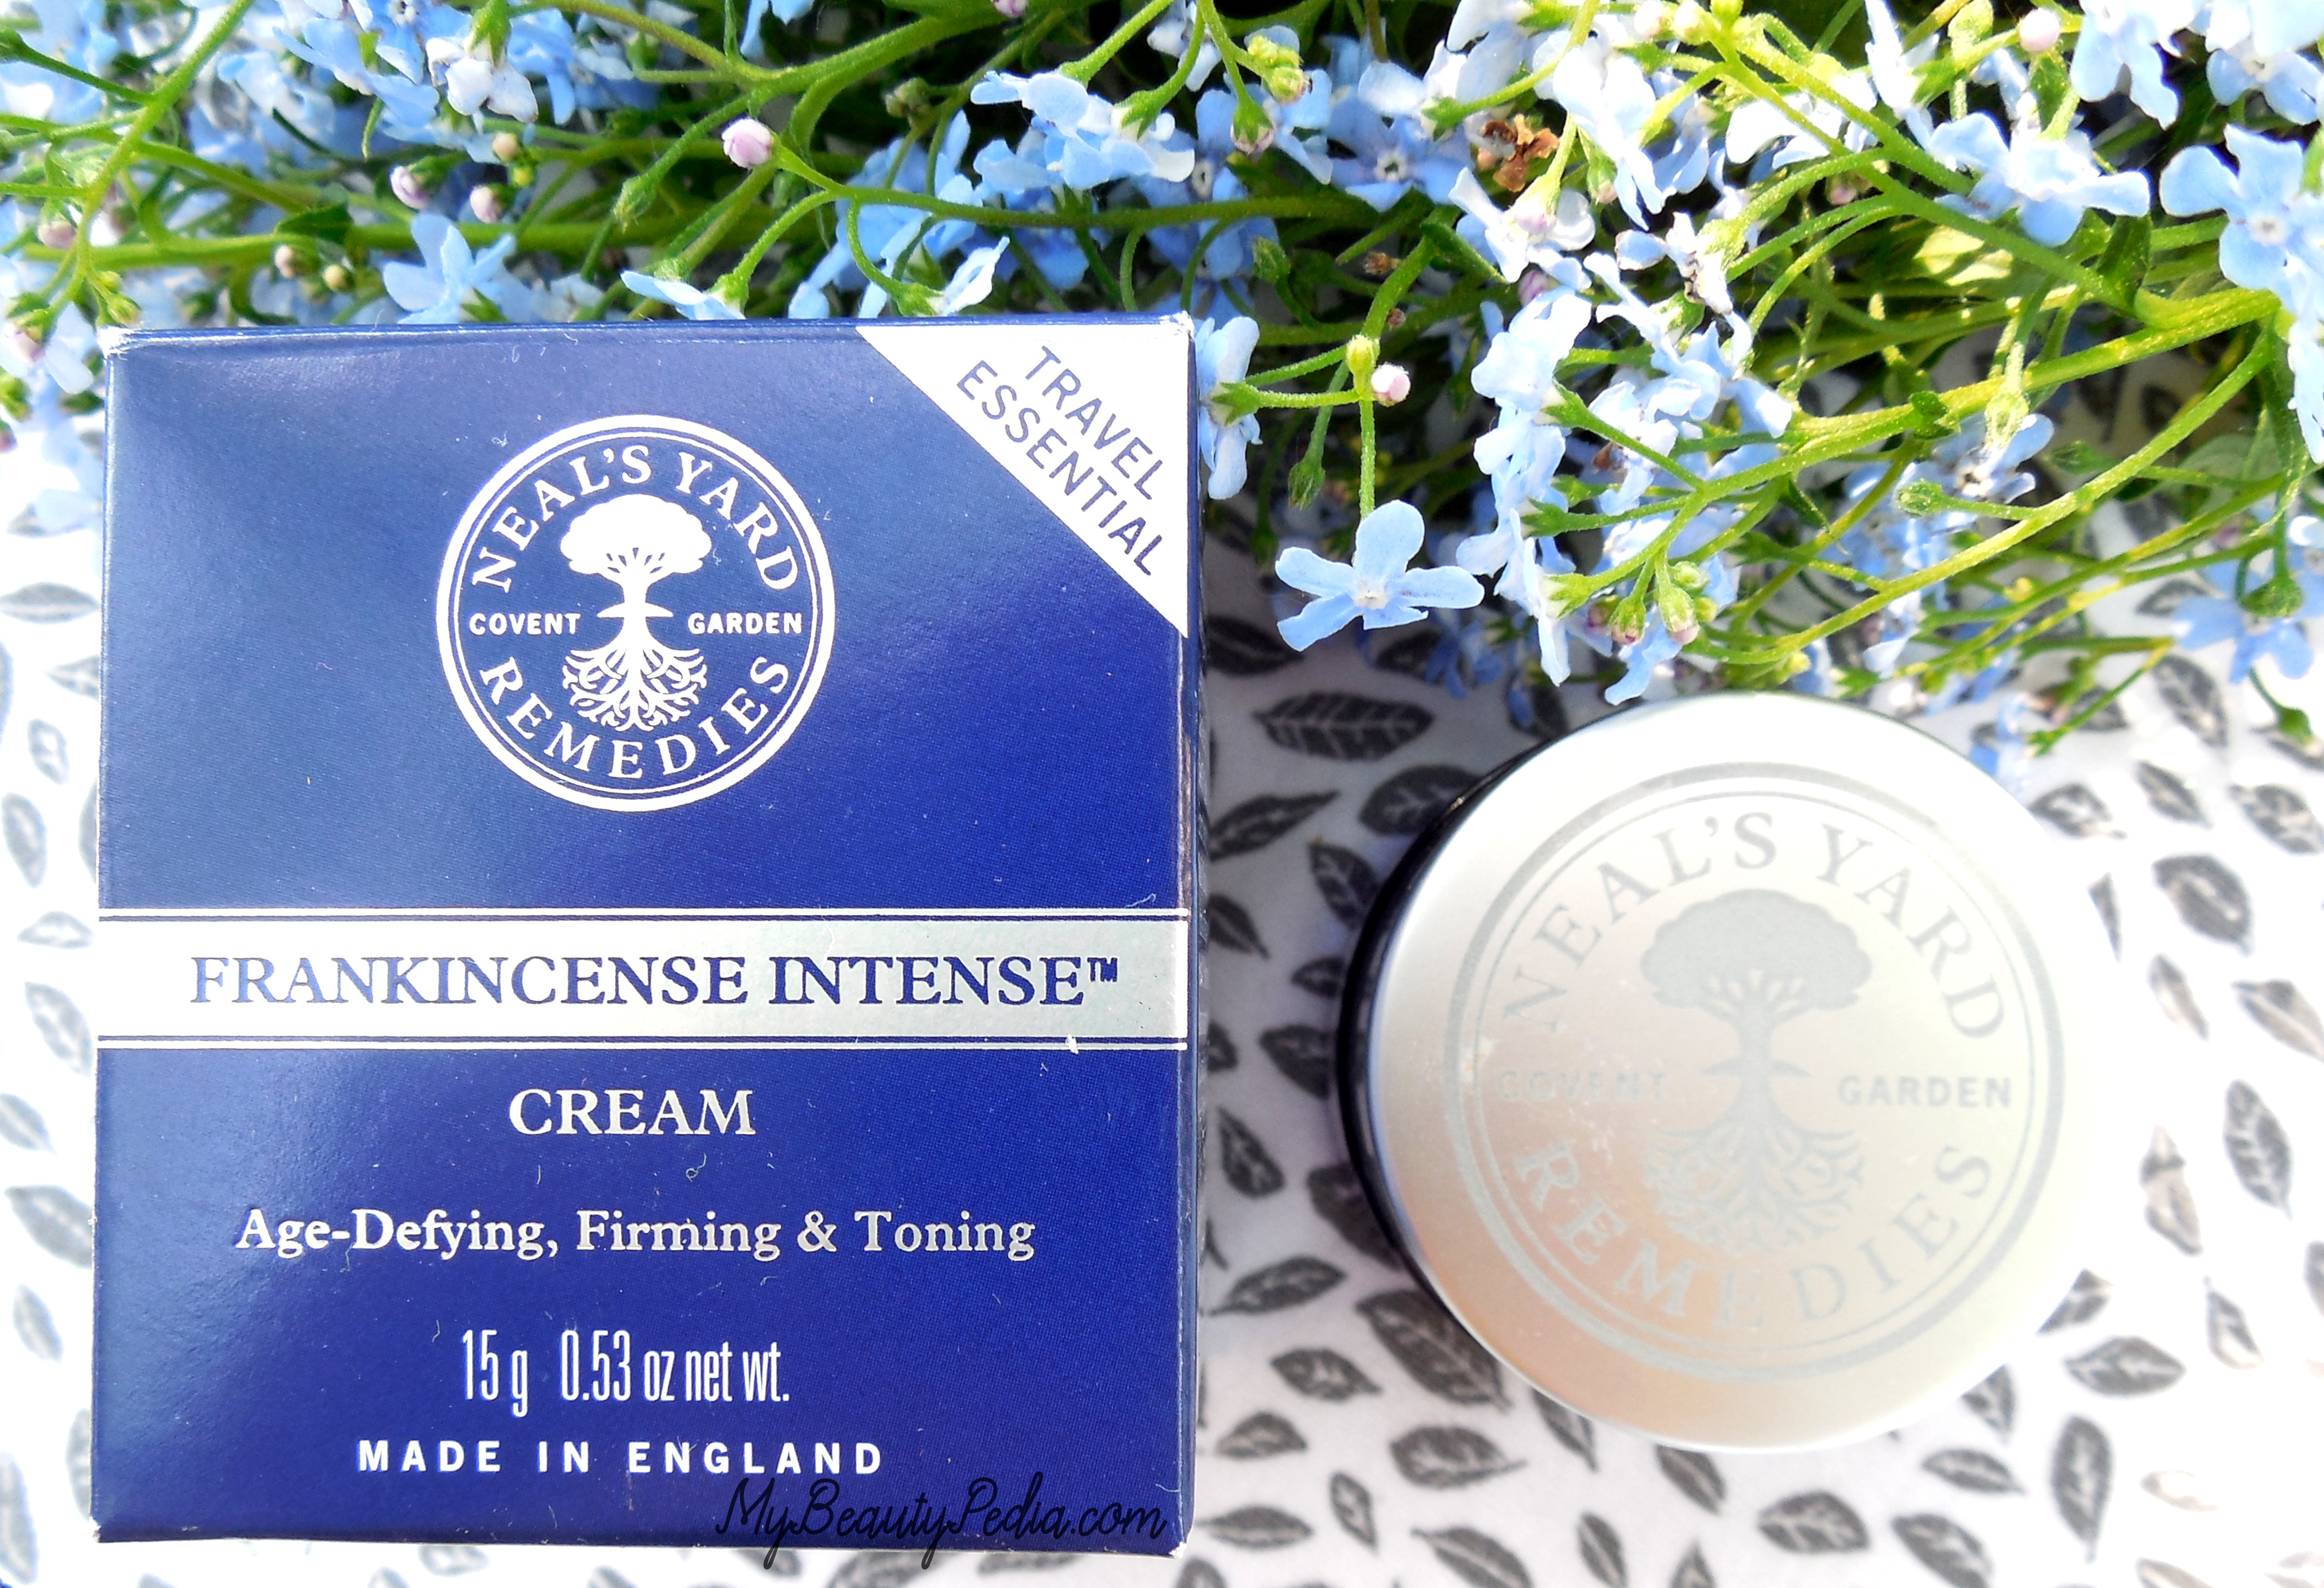 Neal's Yard Remedies Frankincense Intense Crea